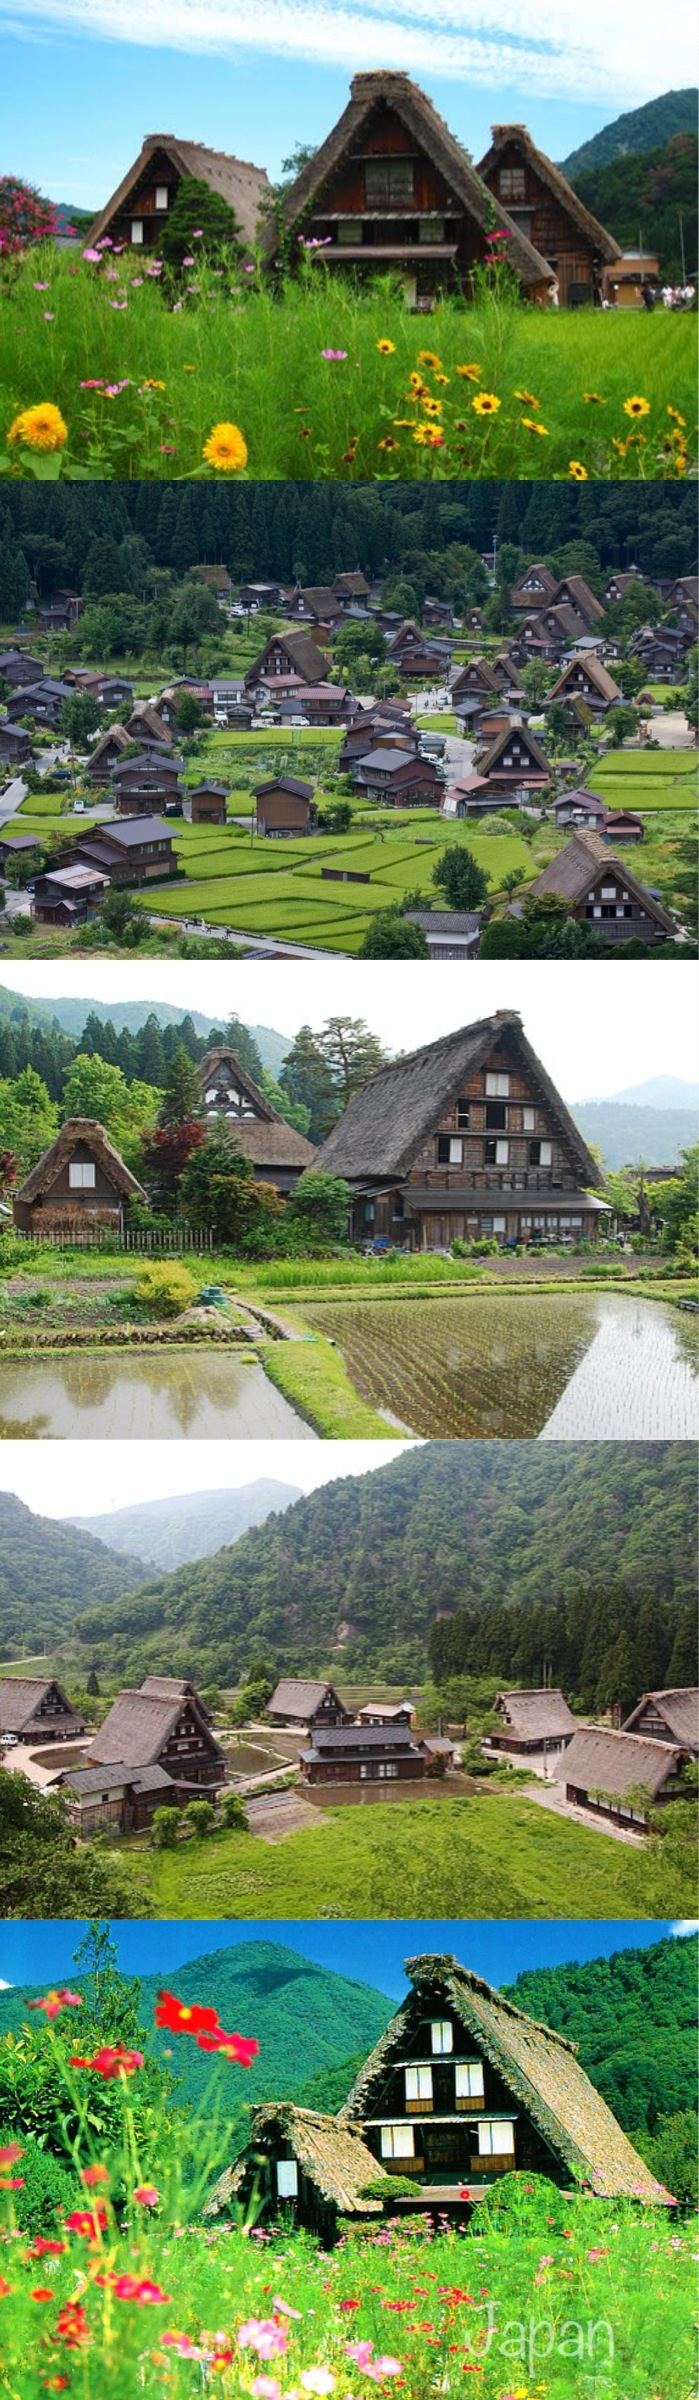 The Shirakawa-go and neighboring Gokayama regions line the Shogawa River Valley in the remote mountains that span from Gifu to Toyama Prefectures. Declared a UNESCO world heritage site in 1995, they are famous for their traditional gassho-zukuri farmhouses, some of which are more than 250 years old.